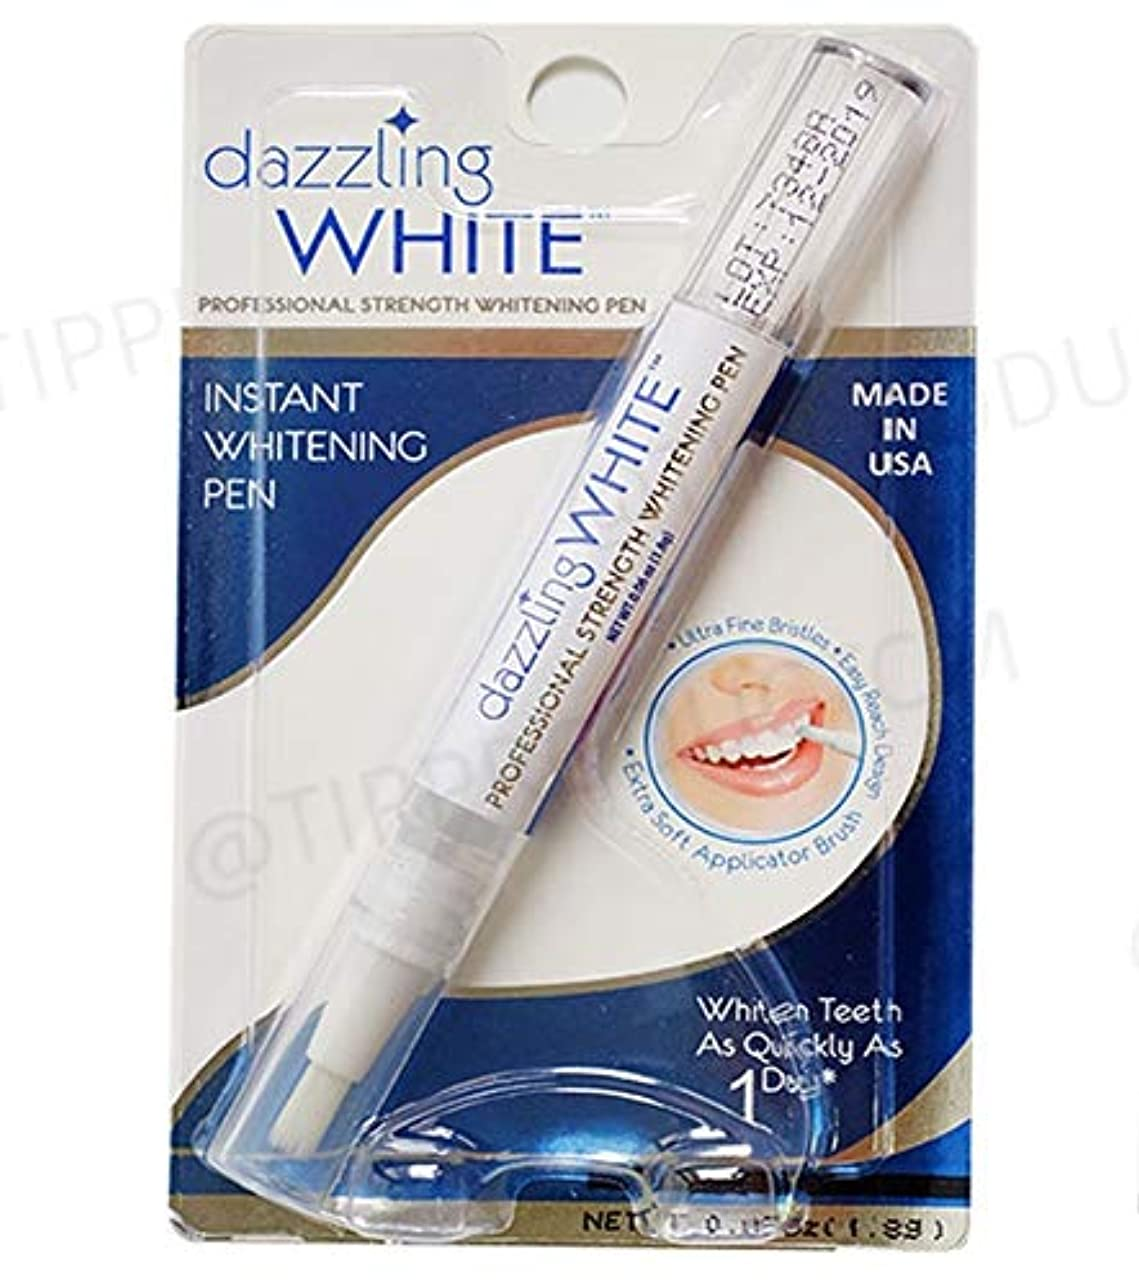 甘味プロフェッショナル眩惑するTeeth Whitening Rotary Peroxide Gel Tooth Cleaning Bleaching Kit Dental Dazzling White Teeth Whitening Pen Blanqueador...